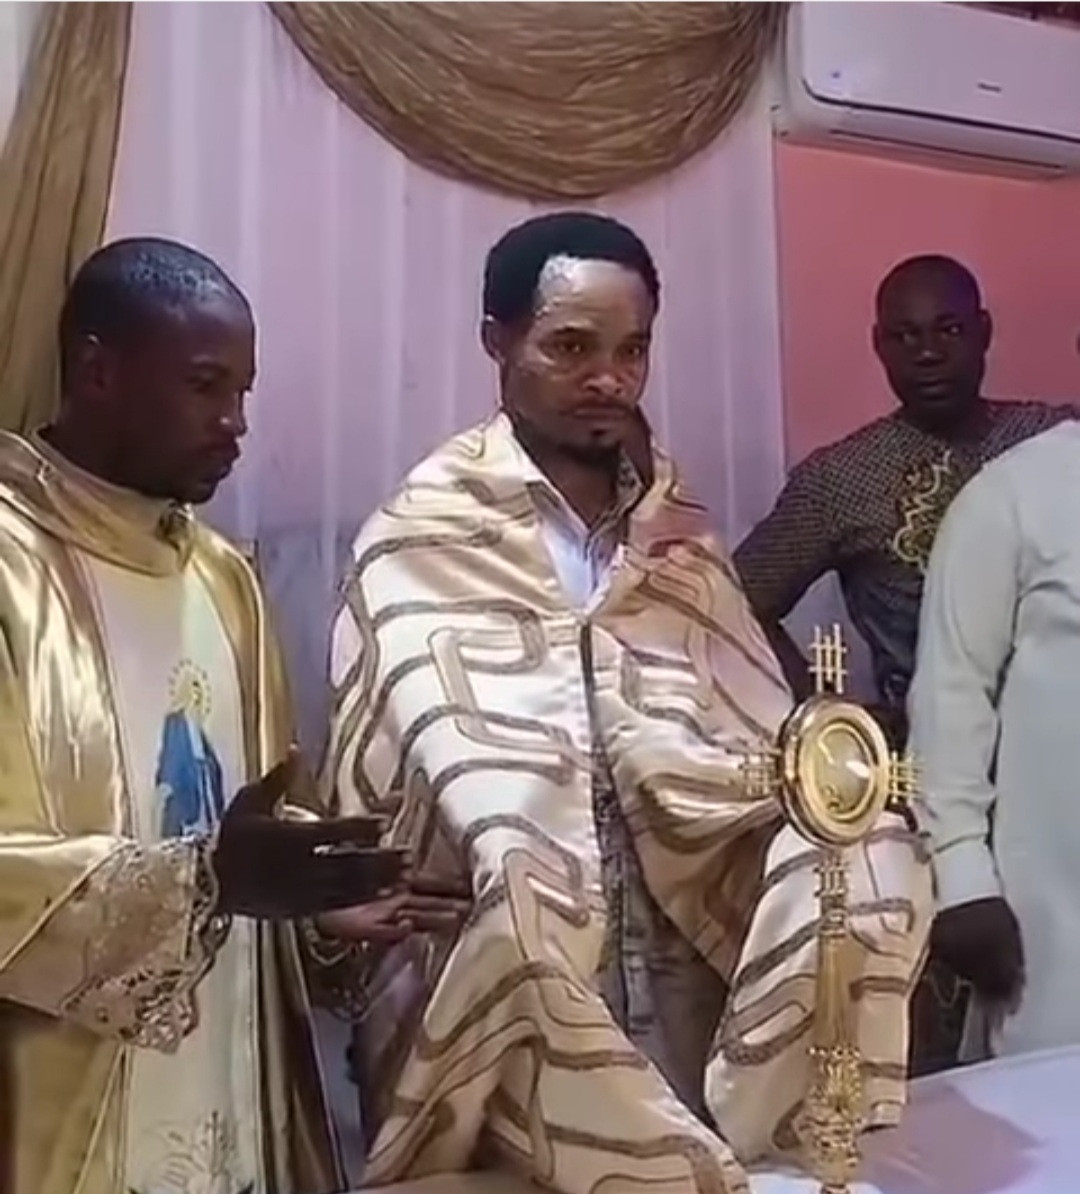 """Outrage as Odumejeje is seen lifting the Catholic """"blessed sacrament"""" after man dressed like a Catholic priest blessed it (video)"""